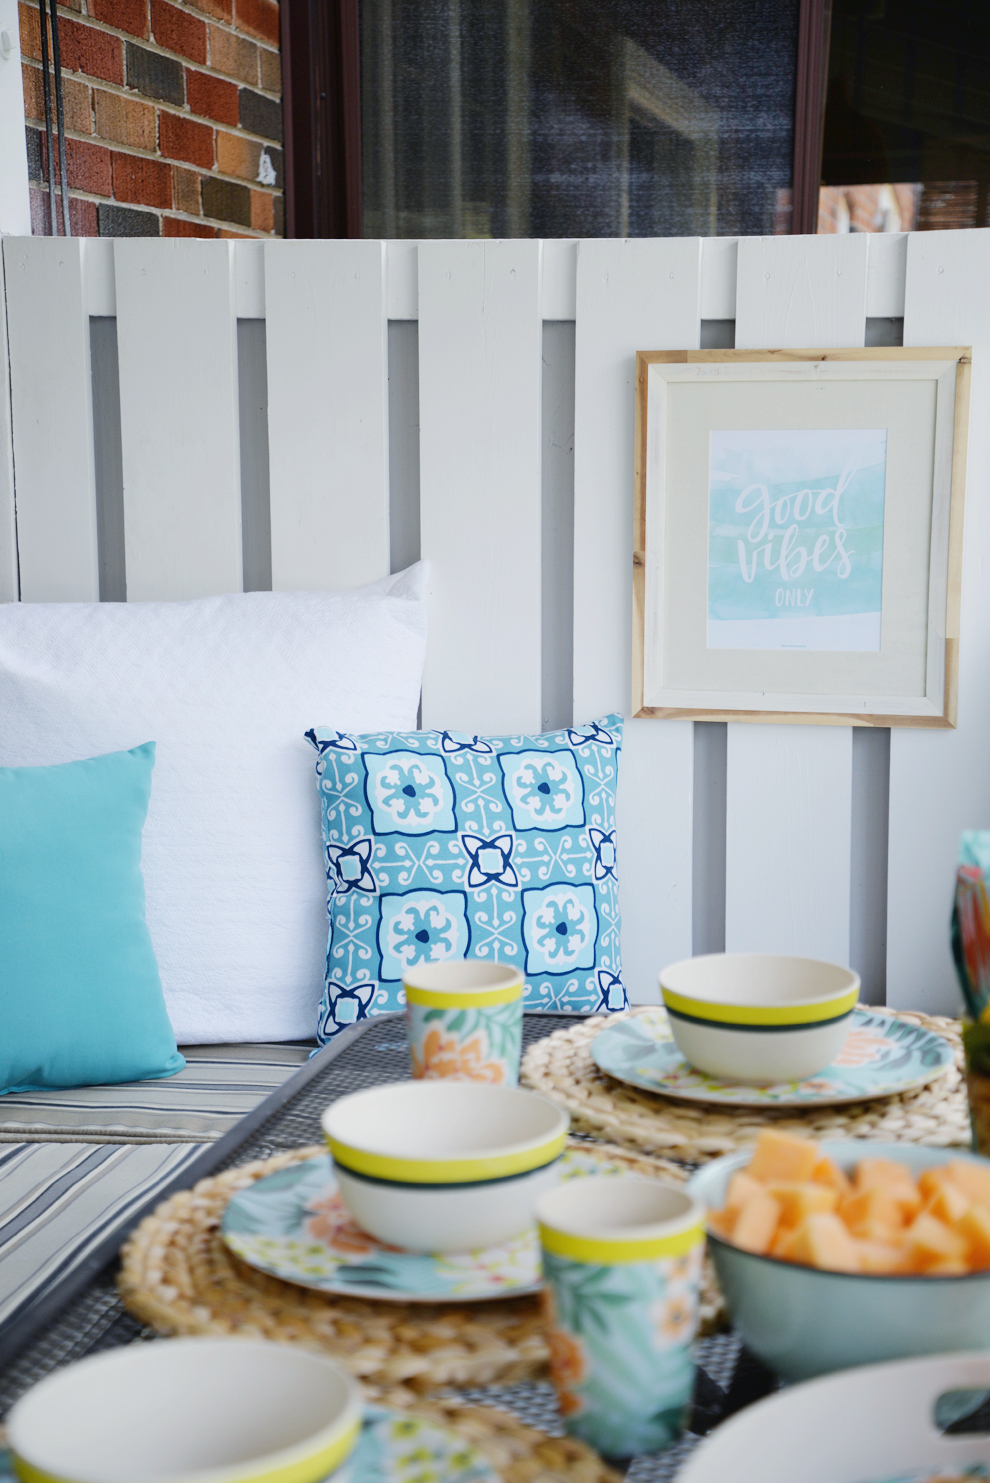 Rambling Renovators | tropical decor, outdoor pillows, blue white rattan decor, good vibes only print